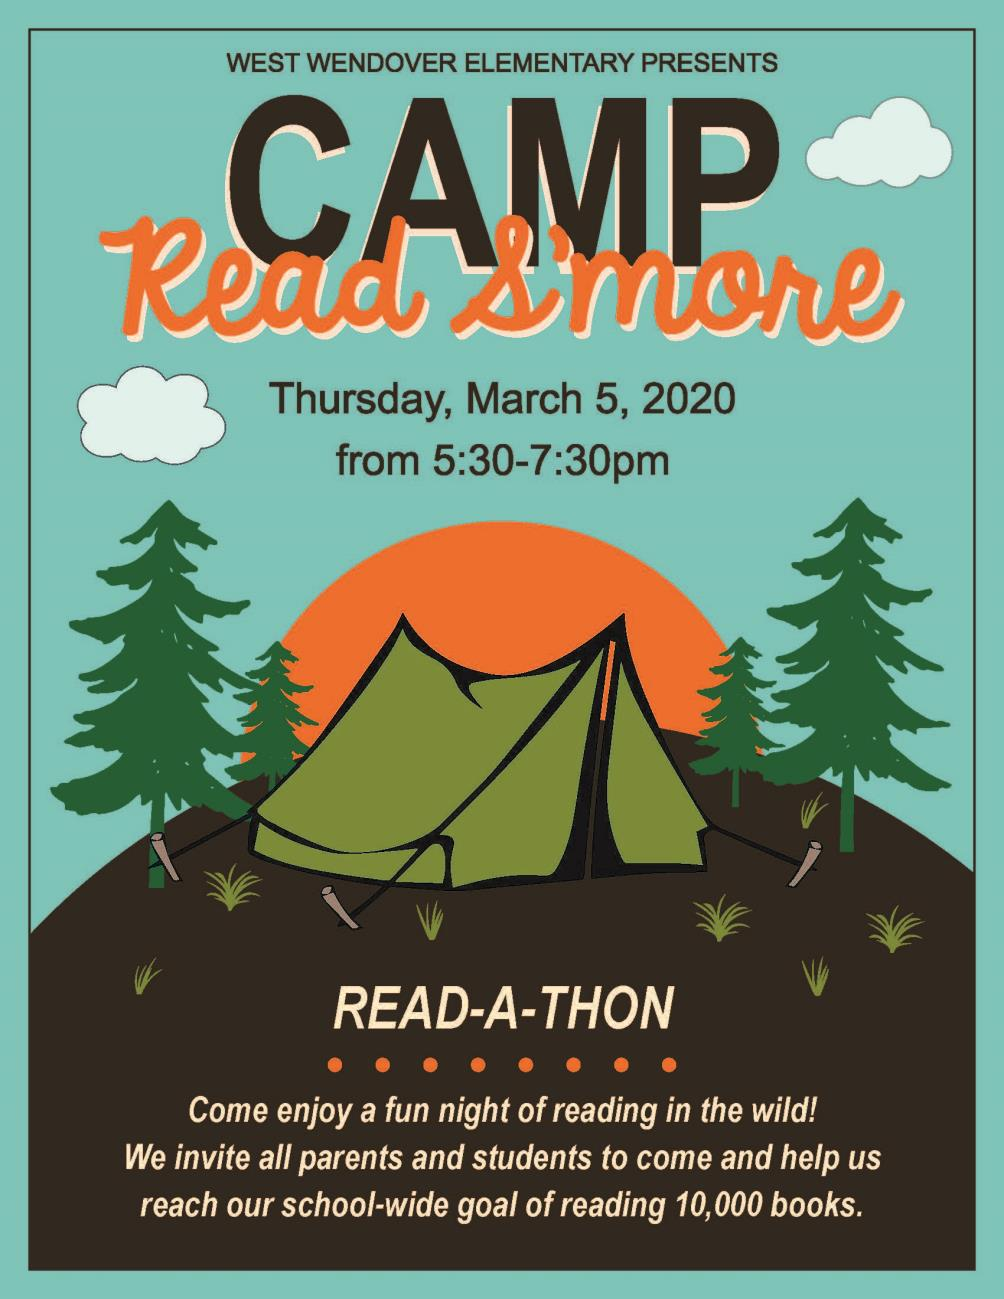 Camp Read Smore (1) Flyer 3-5-2020